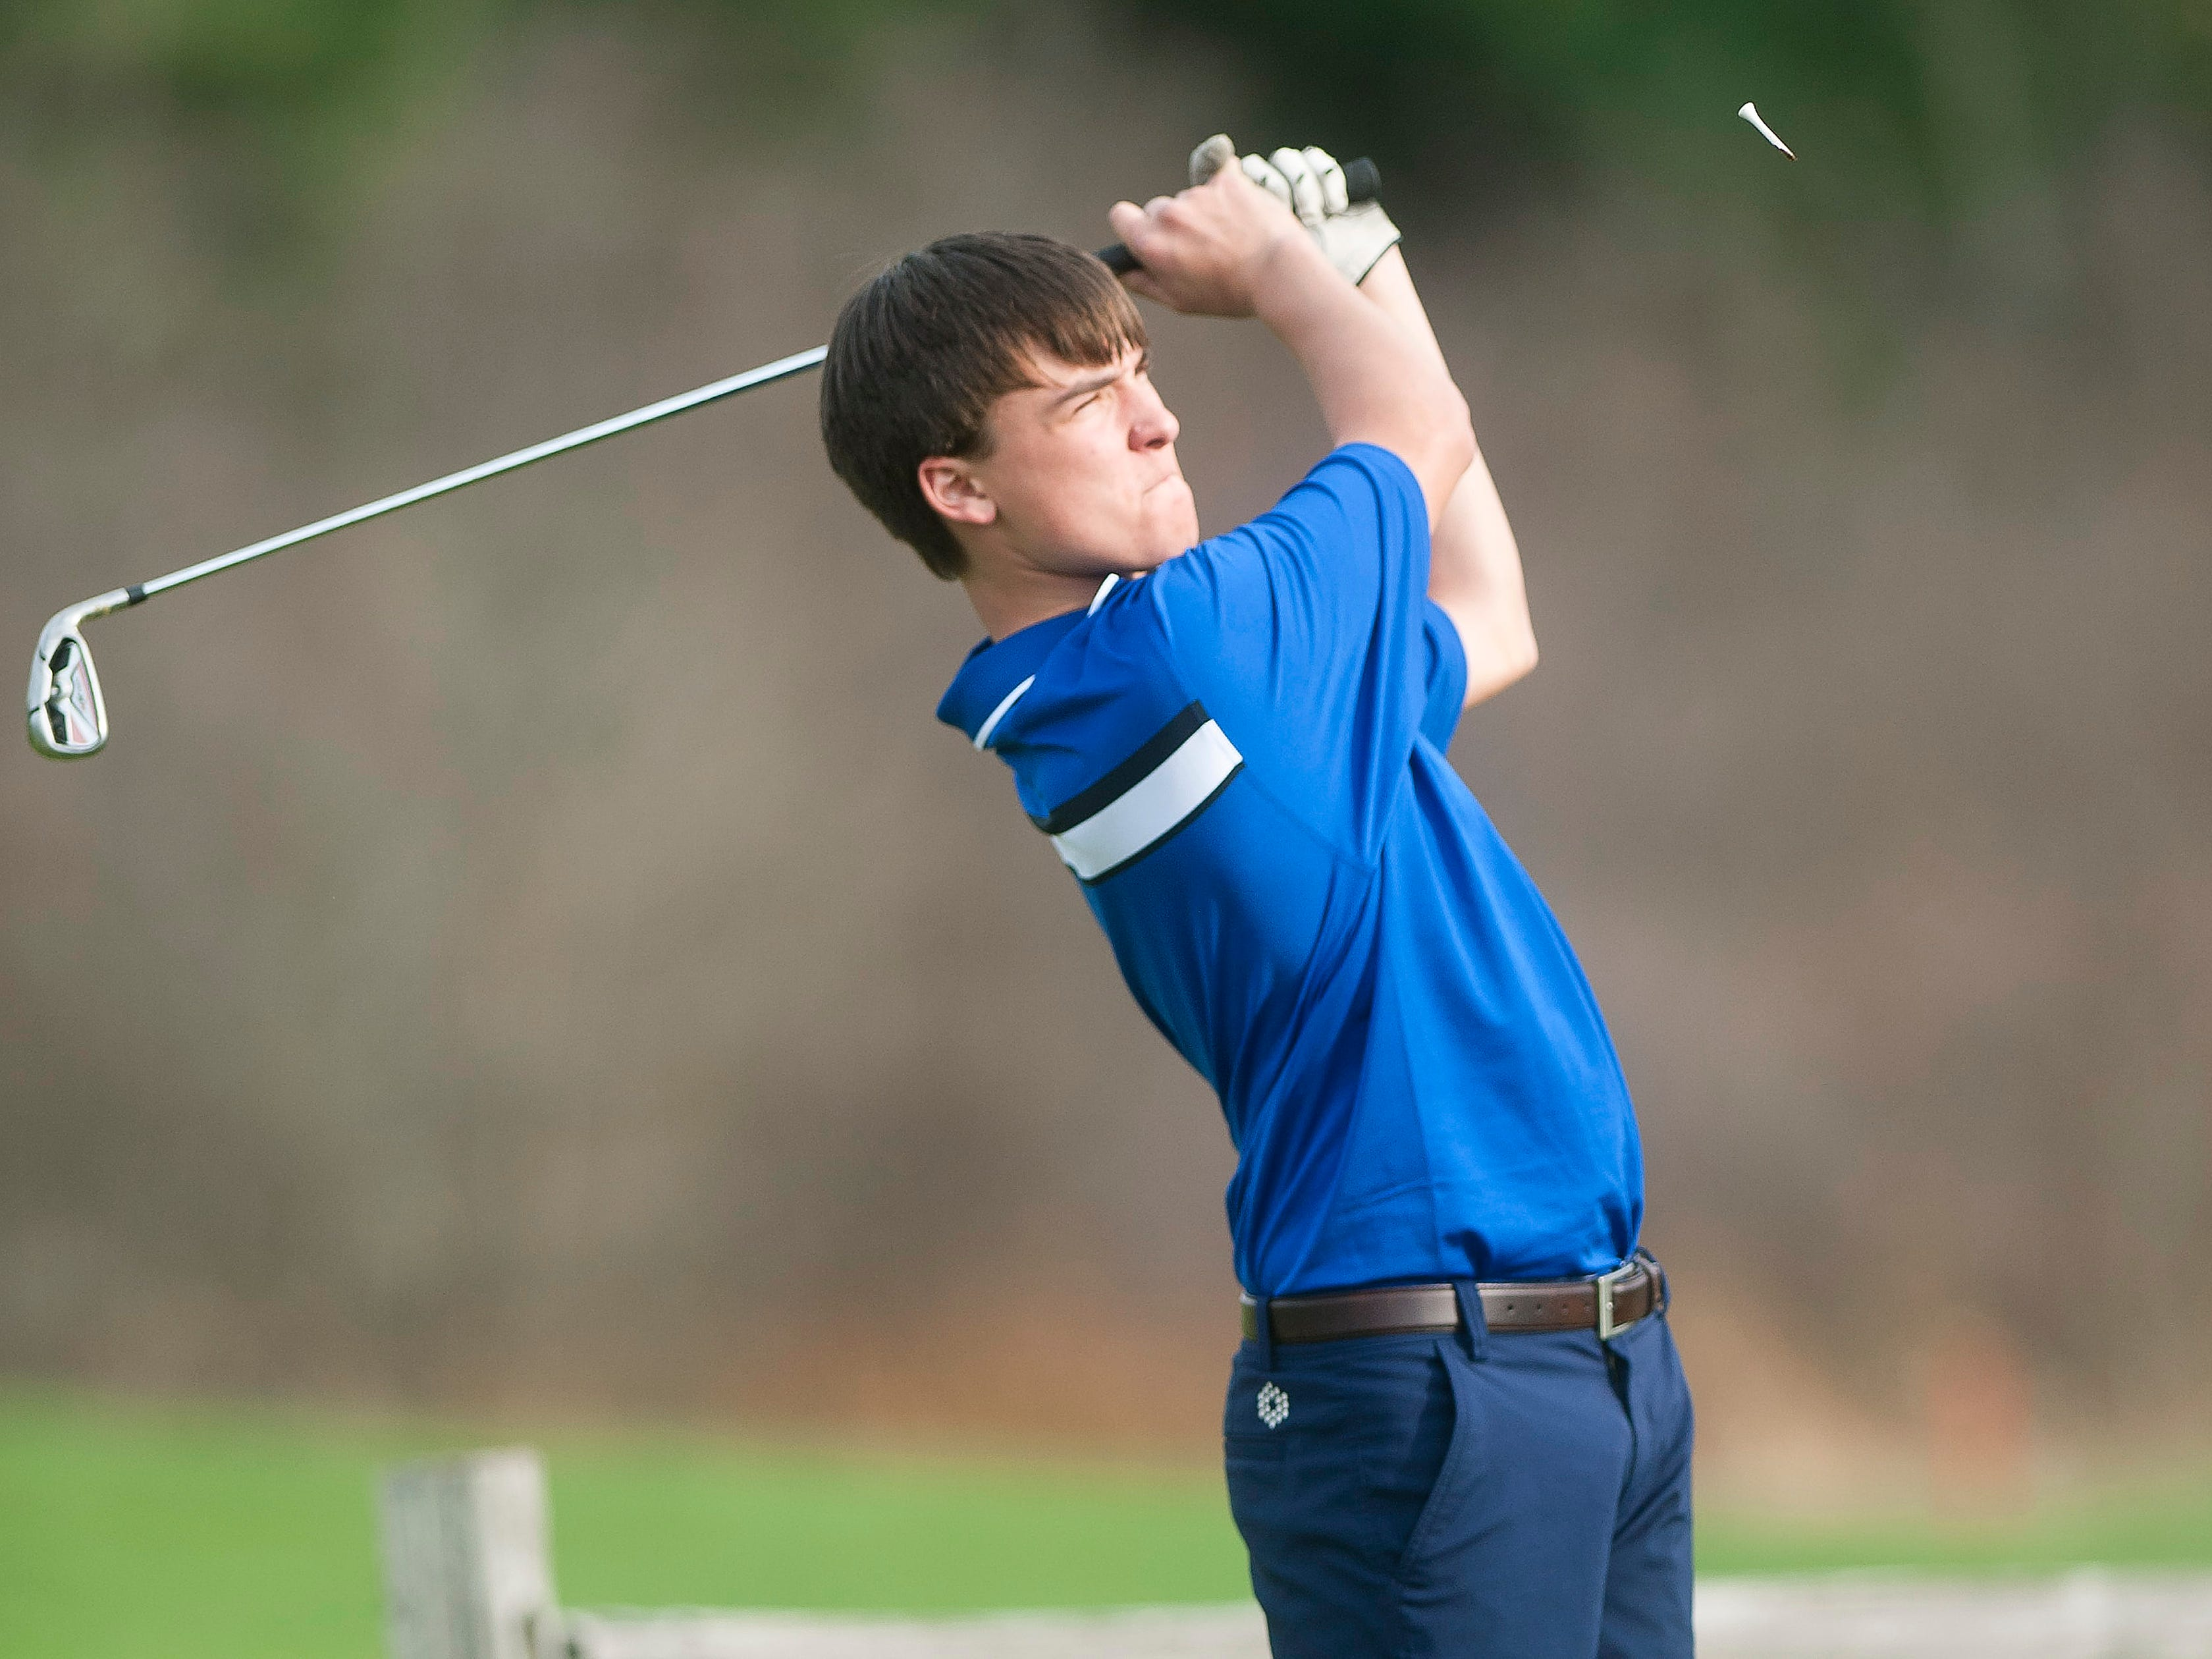 Mount Mansfield's Josh Graning tees off on the par-3 ninth hole at Essex Country Club during Tuesday's high school golf match.